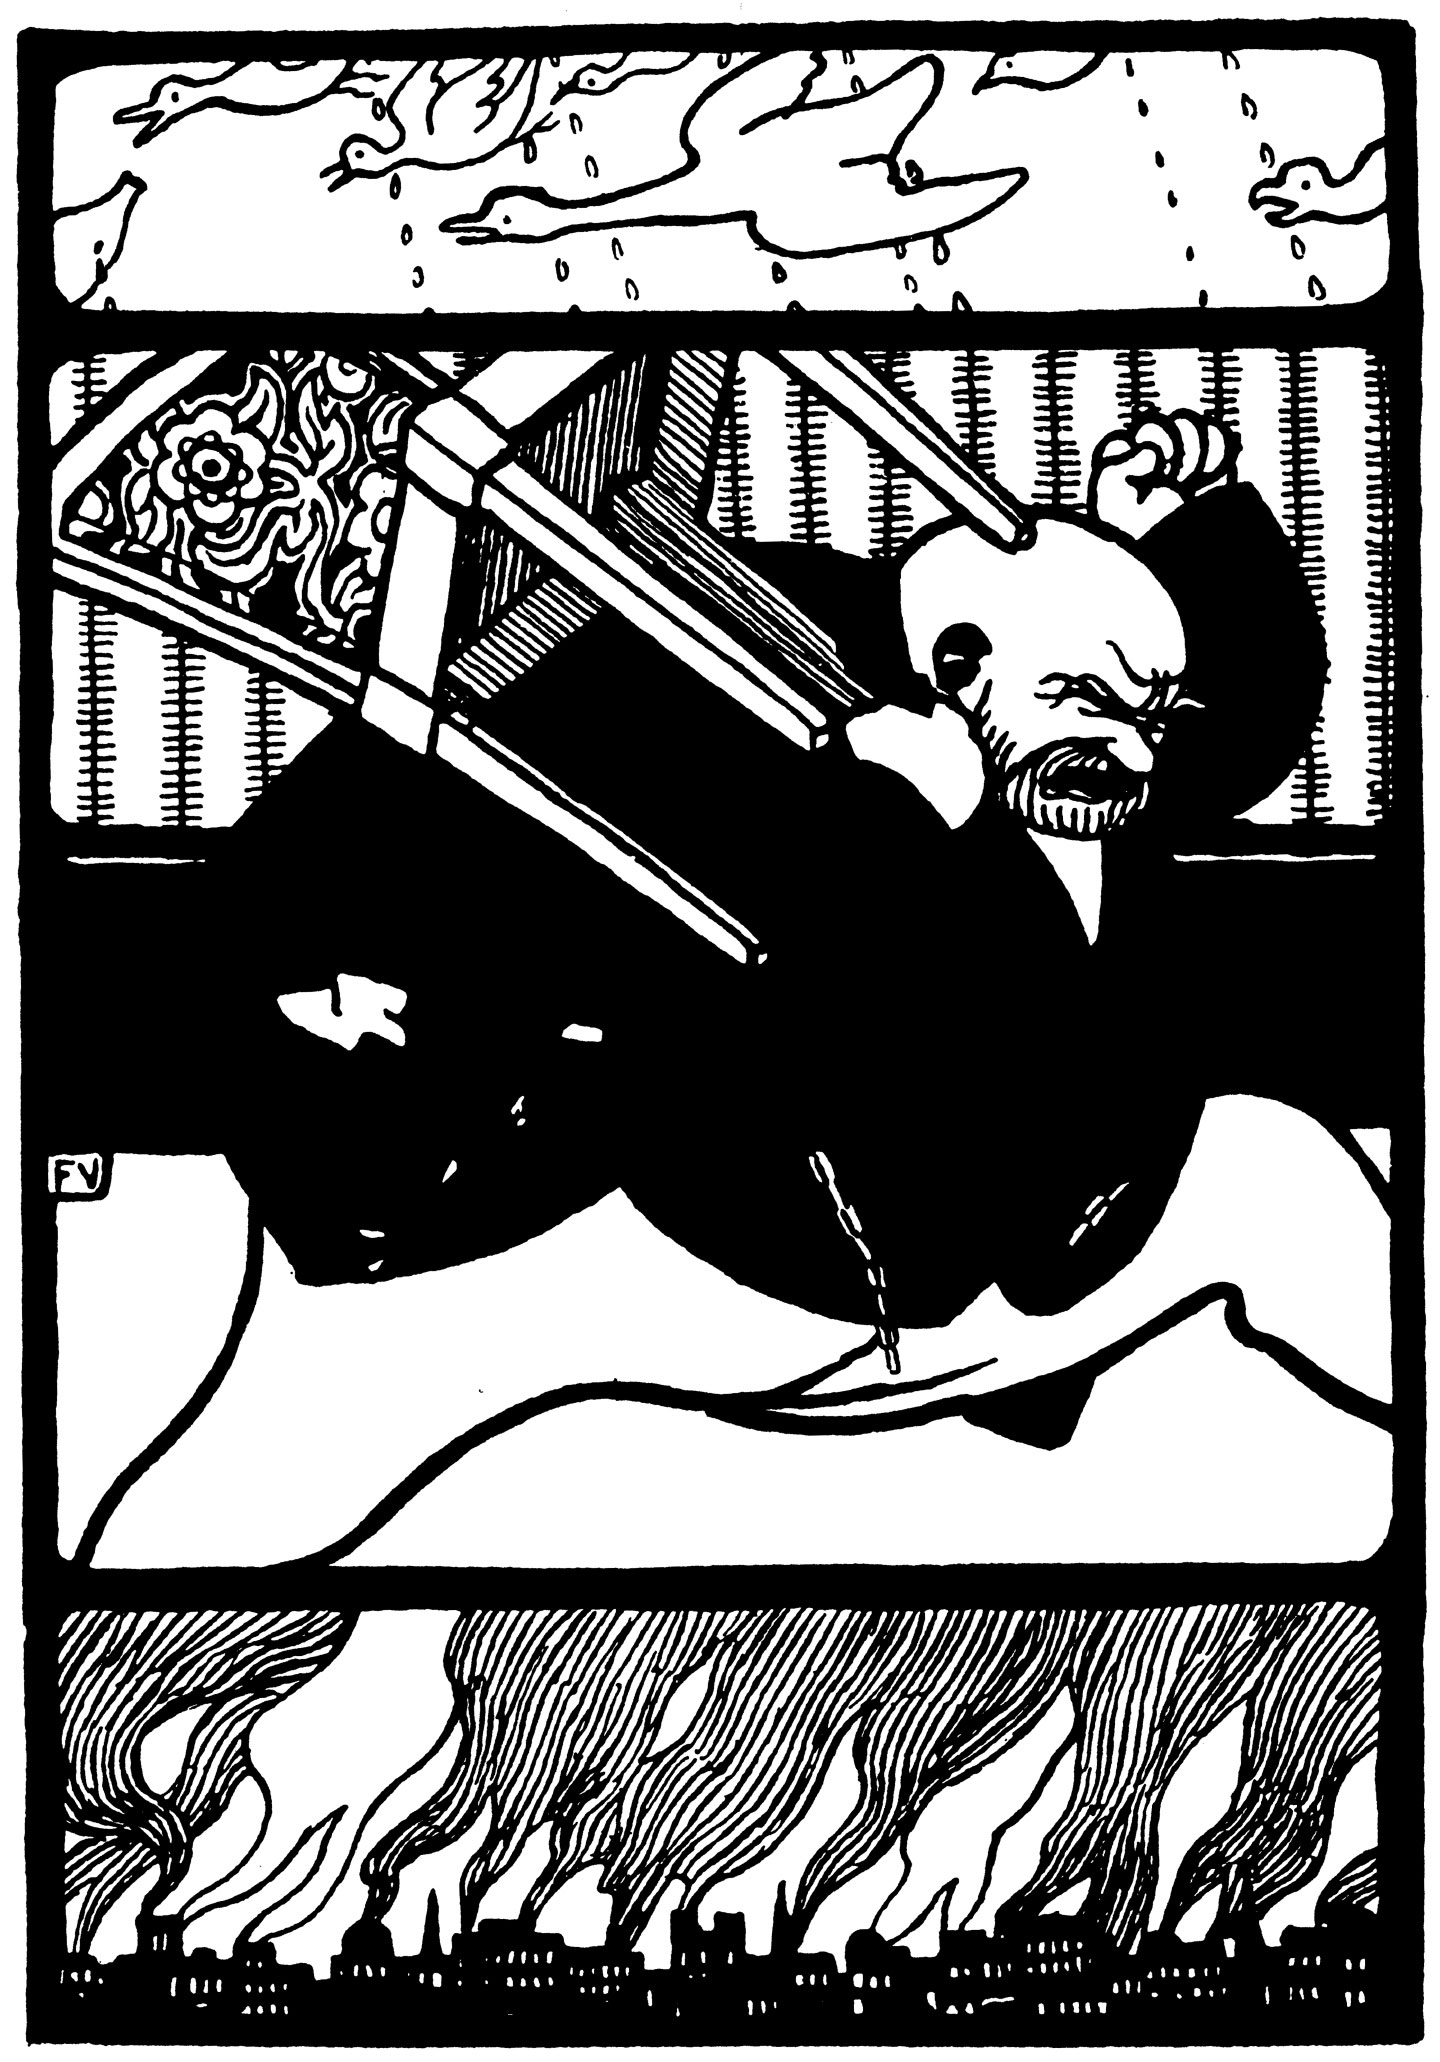 Illustration of Rakkóx by Félix Vallotton from Rakkóx the Billionaire